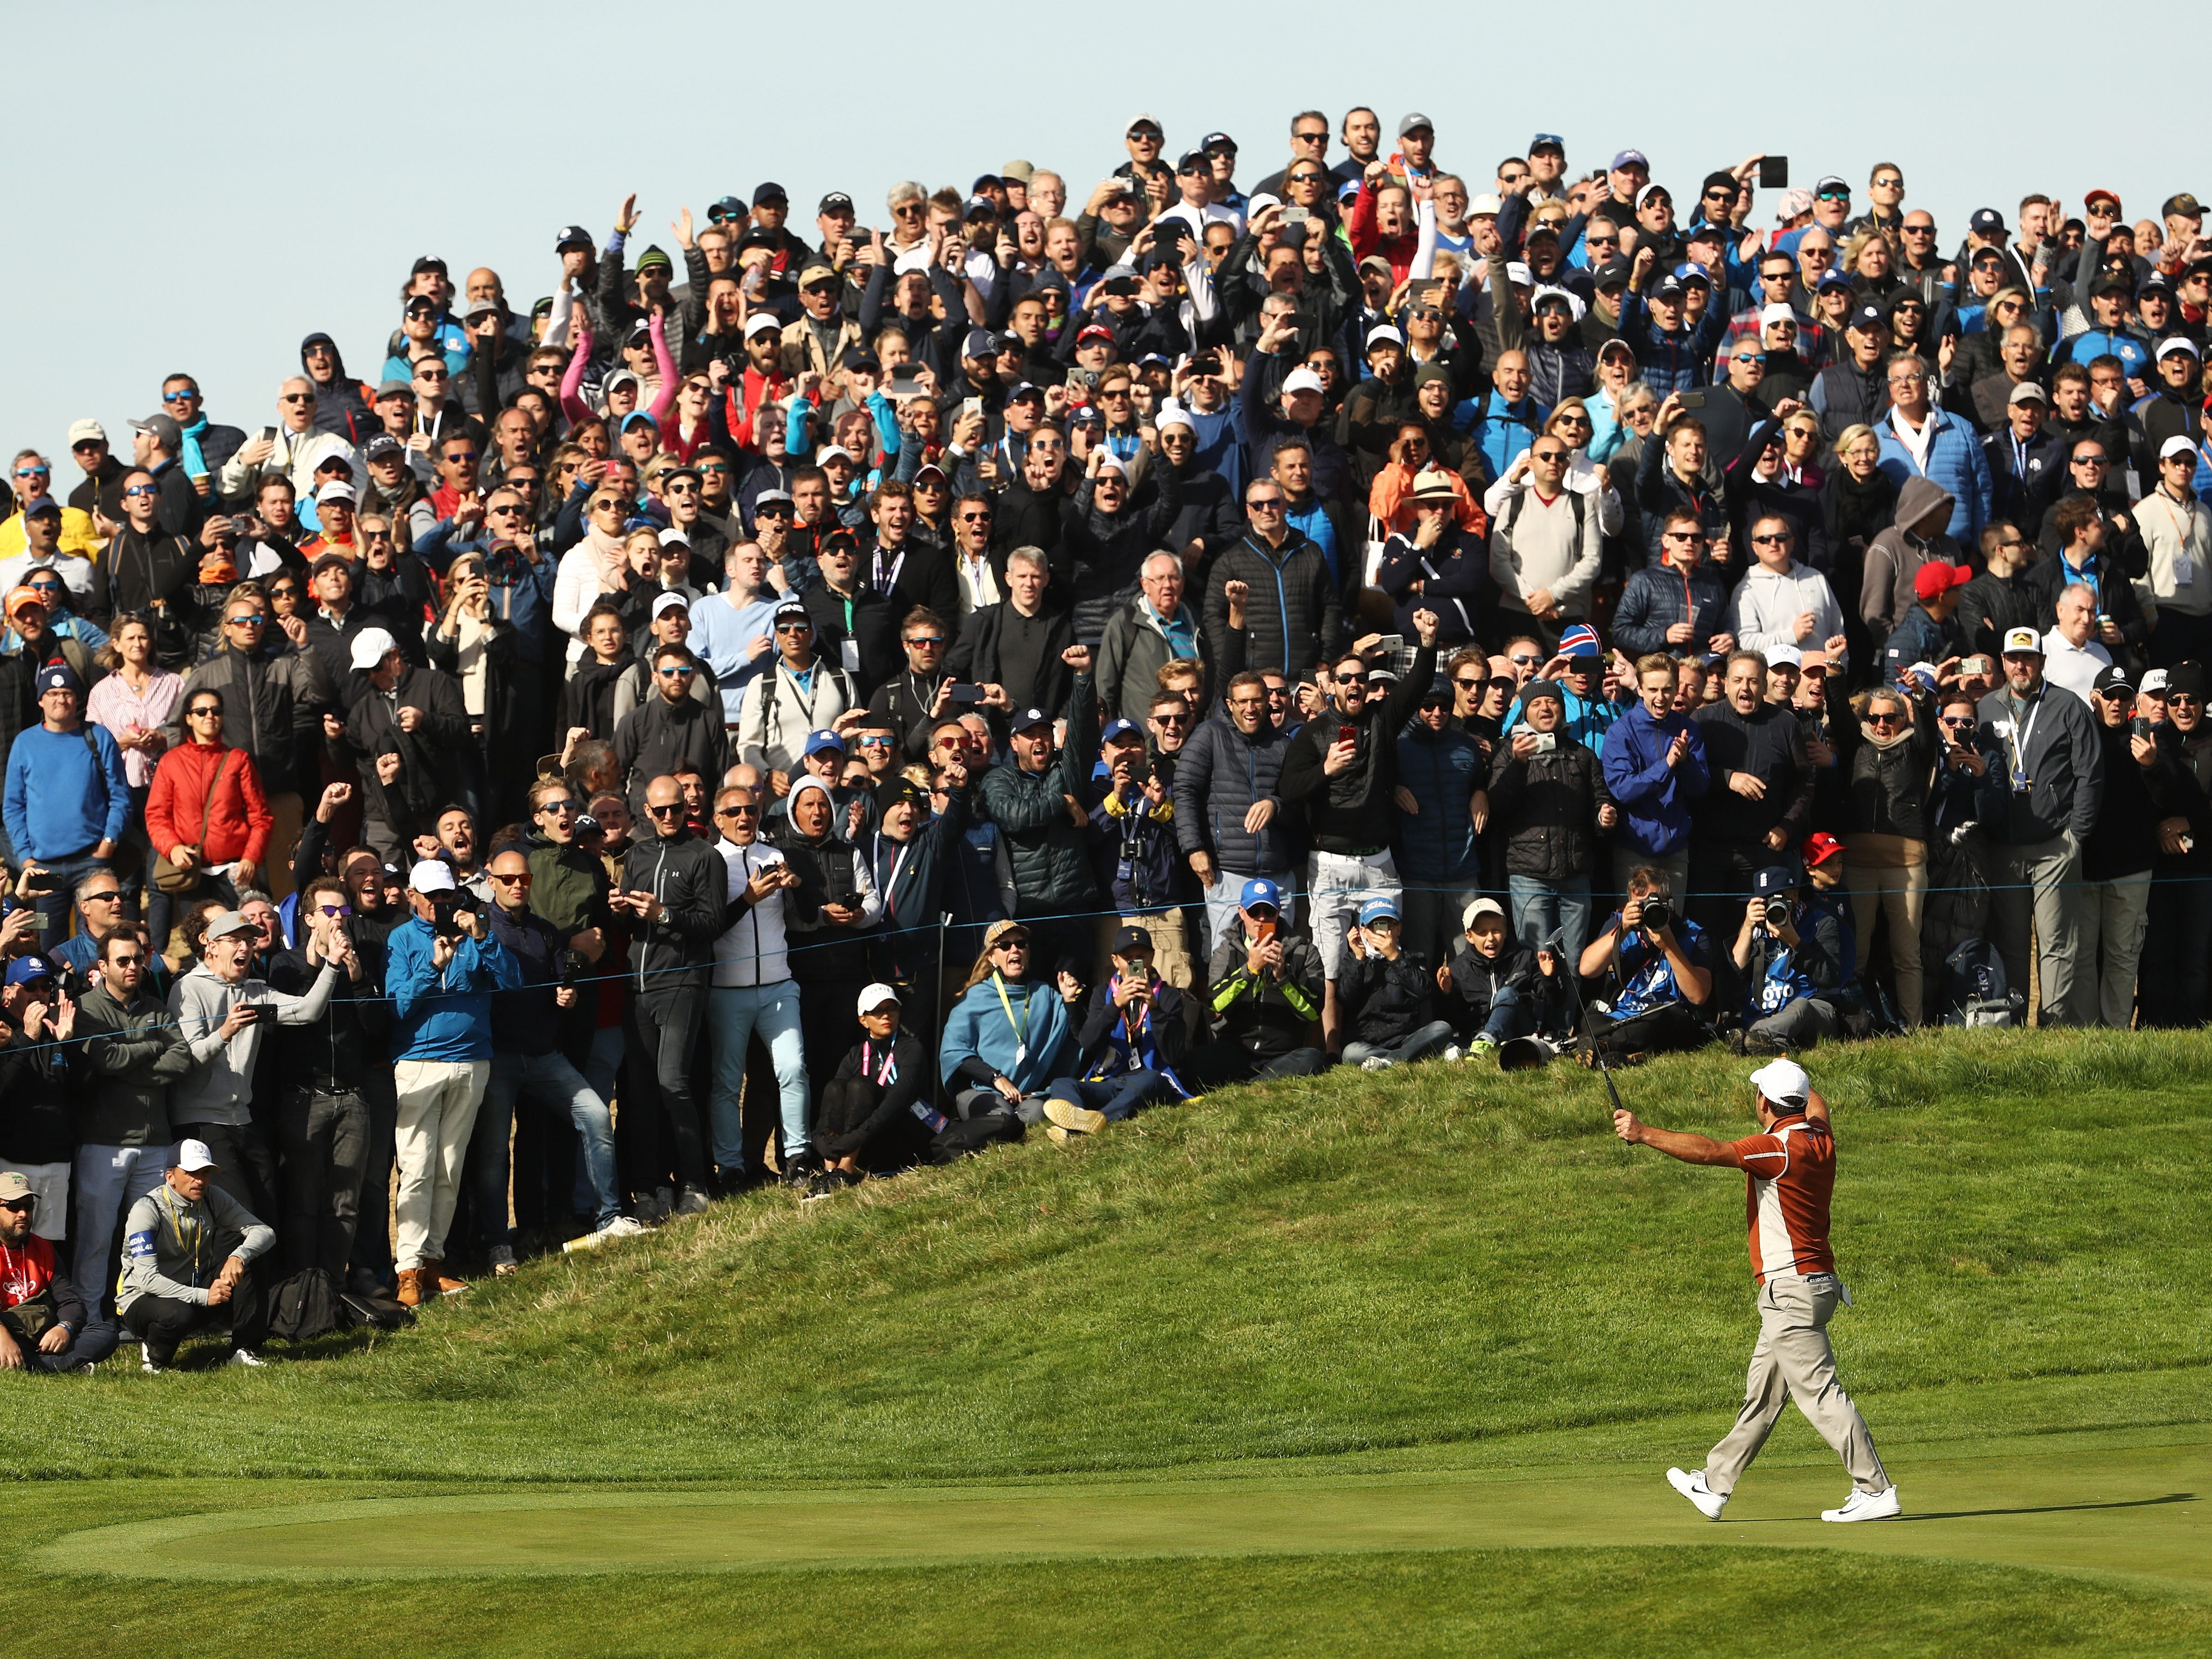 Francesco Molinari celebrates during the morning fourball matches on Saturday.